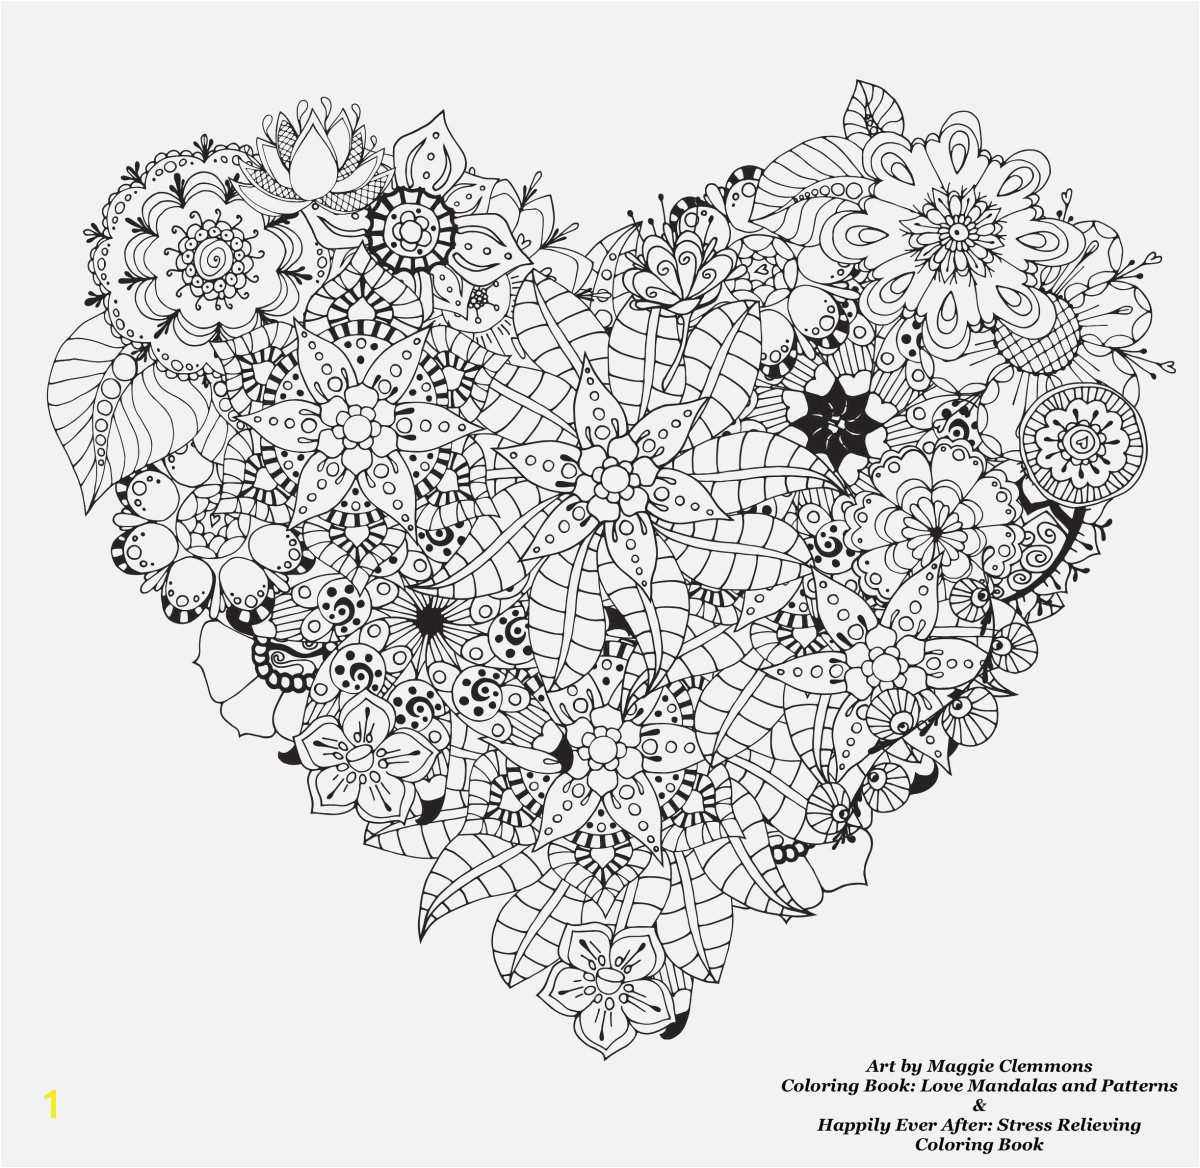 Stress Relief Coloring Books Free Download Best Coloring Page for Adult Od Kids Simple Floral Heart